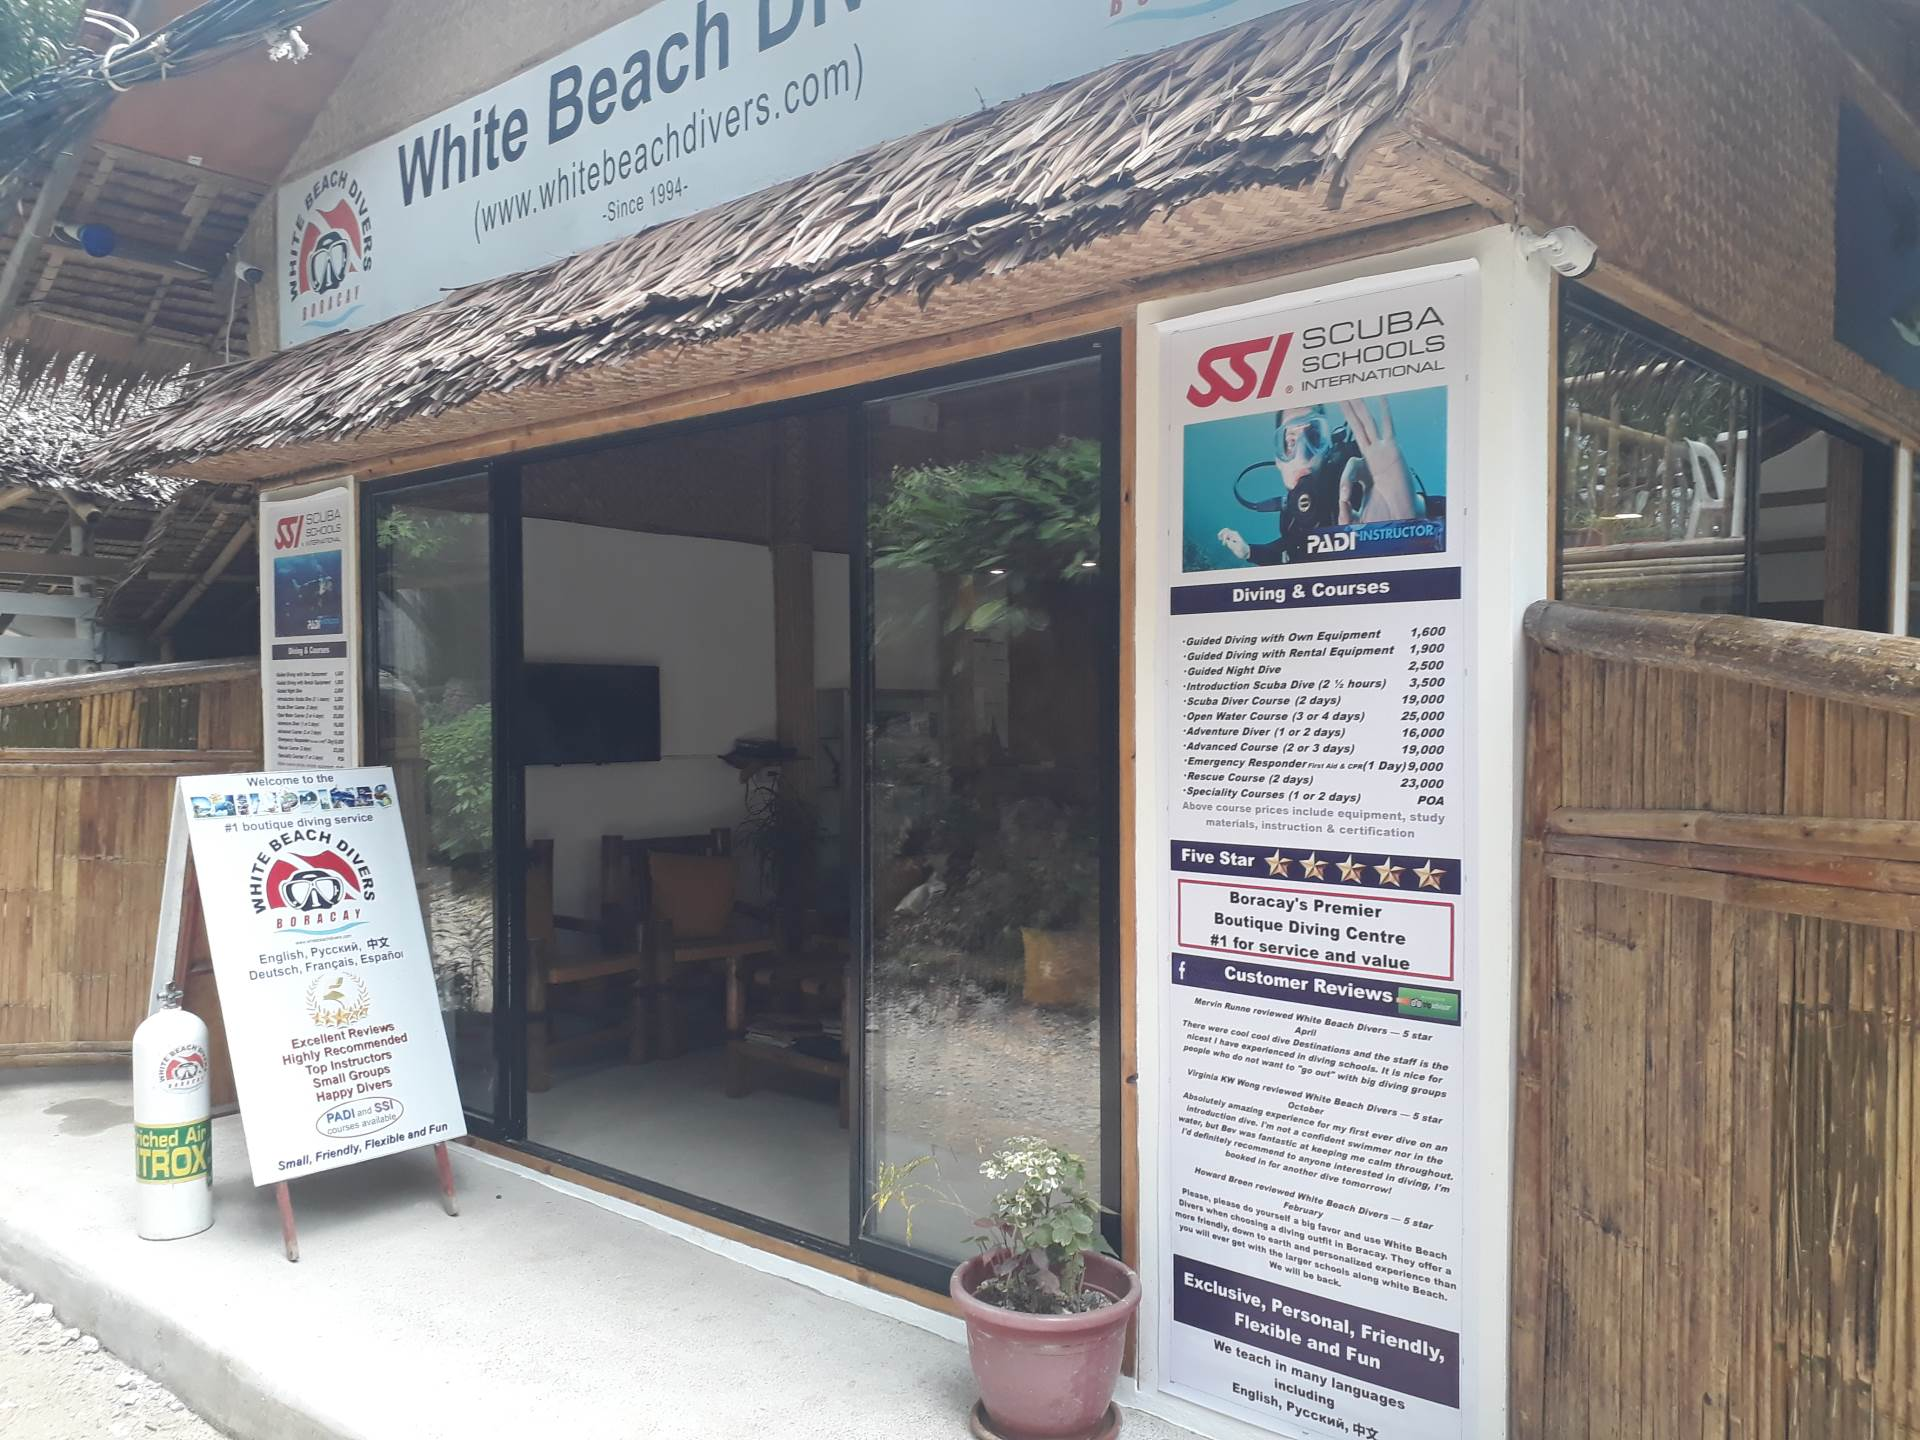 Great facilities at this 5 star boutique dive center. White Beach Divers